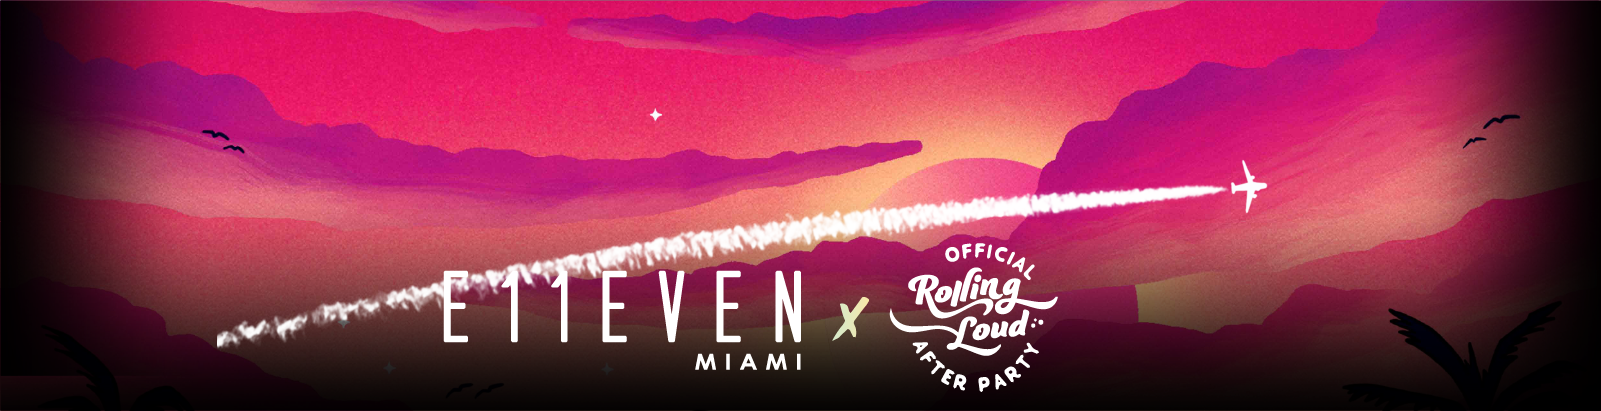 Rolling Loud E11EVEN Miami Header-01[1].png